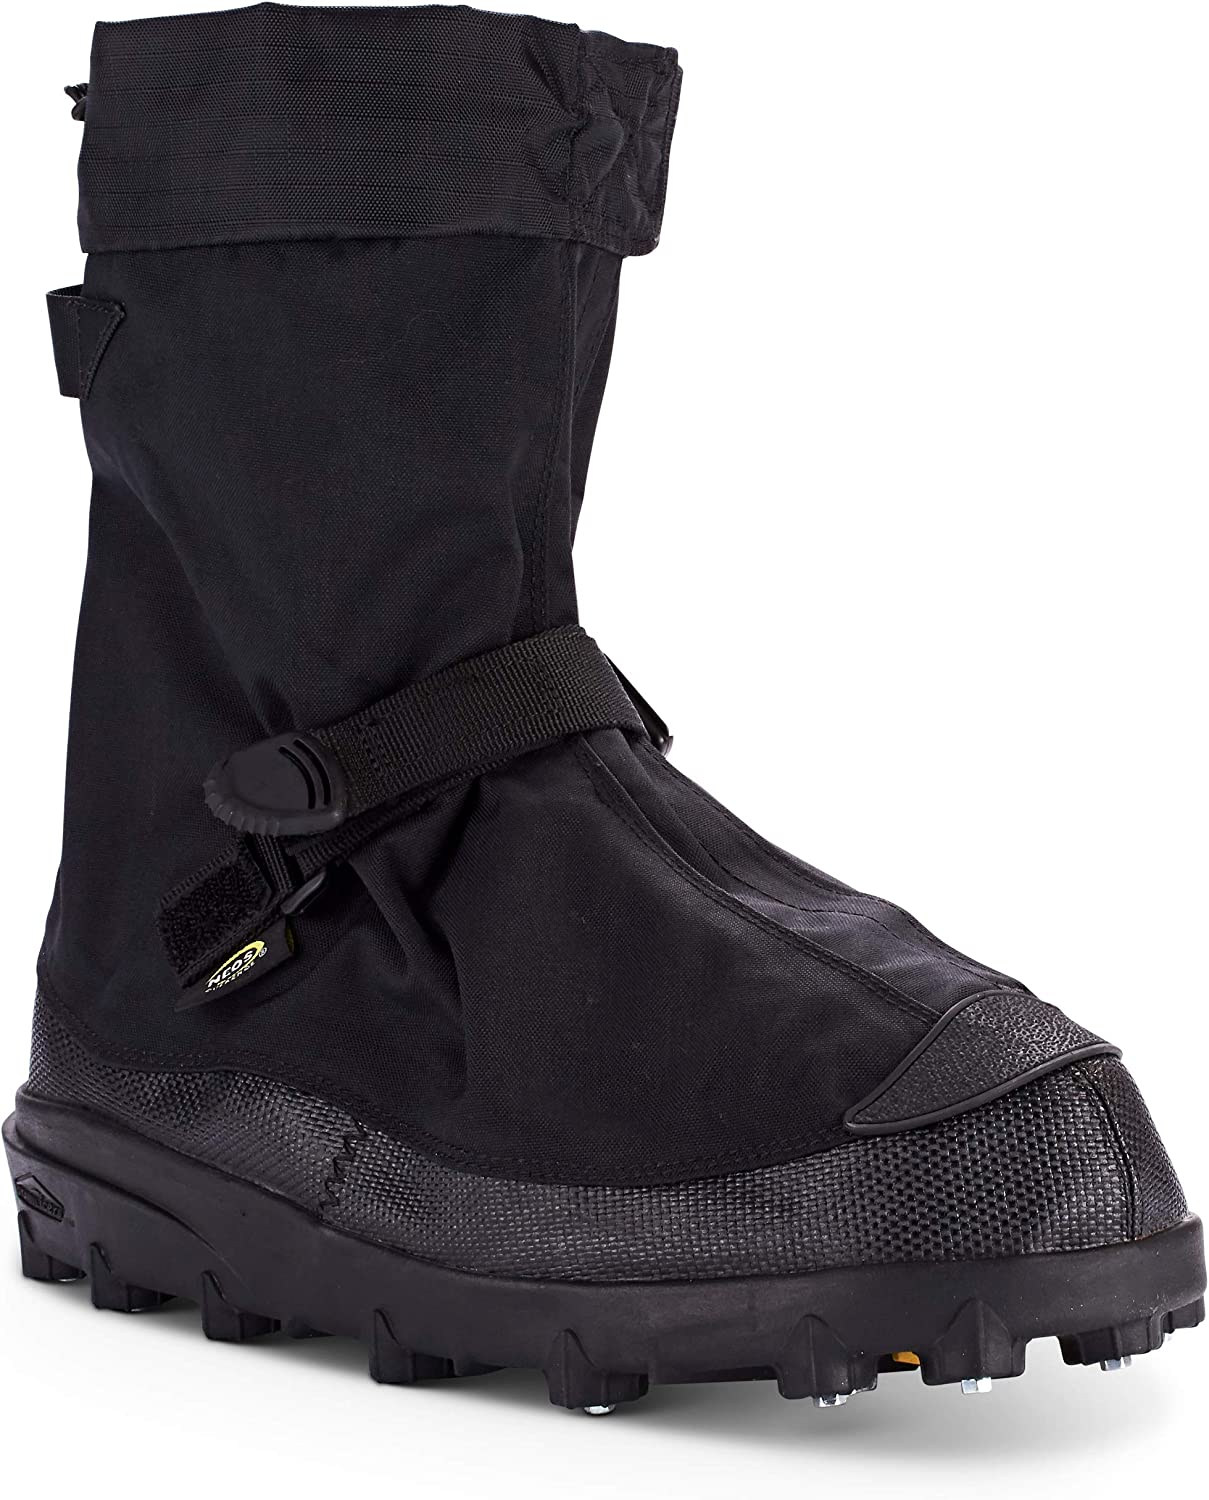 STABILicers Neos High Waterproof Overshoe with Integrated Traction Cleats: Shoes